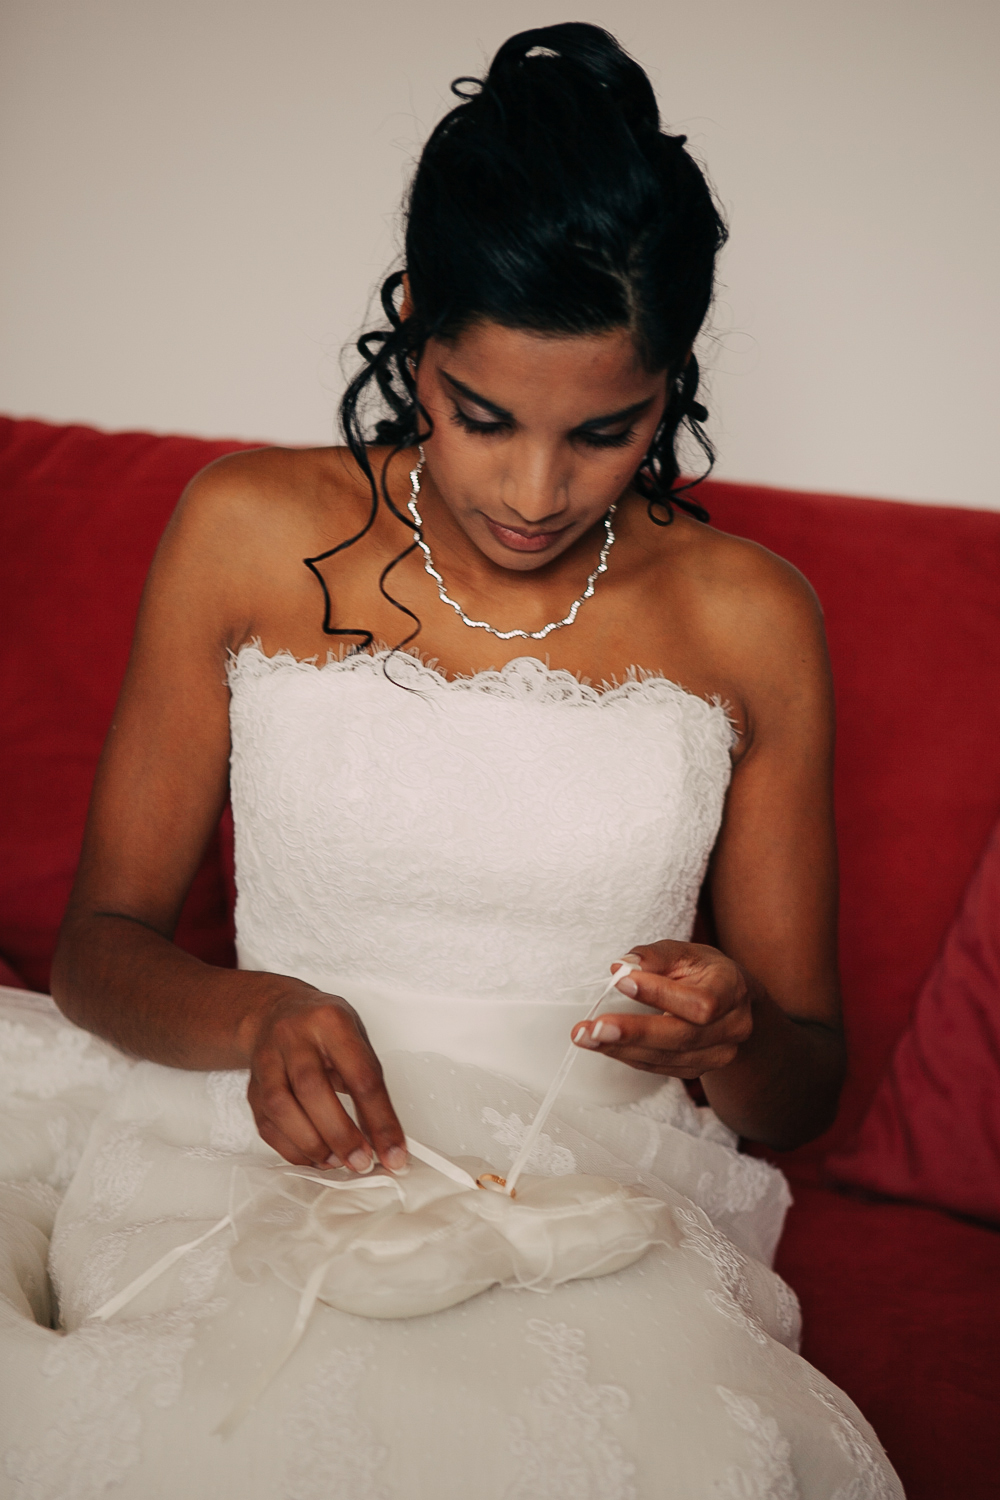 Wedding01_Paola_Meloni_007.jpg